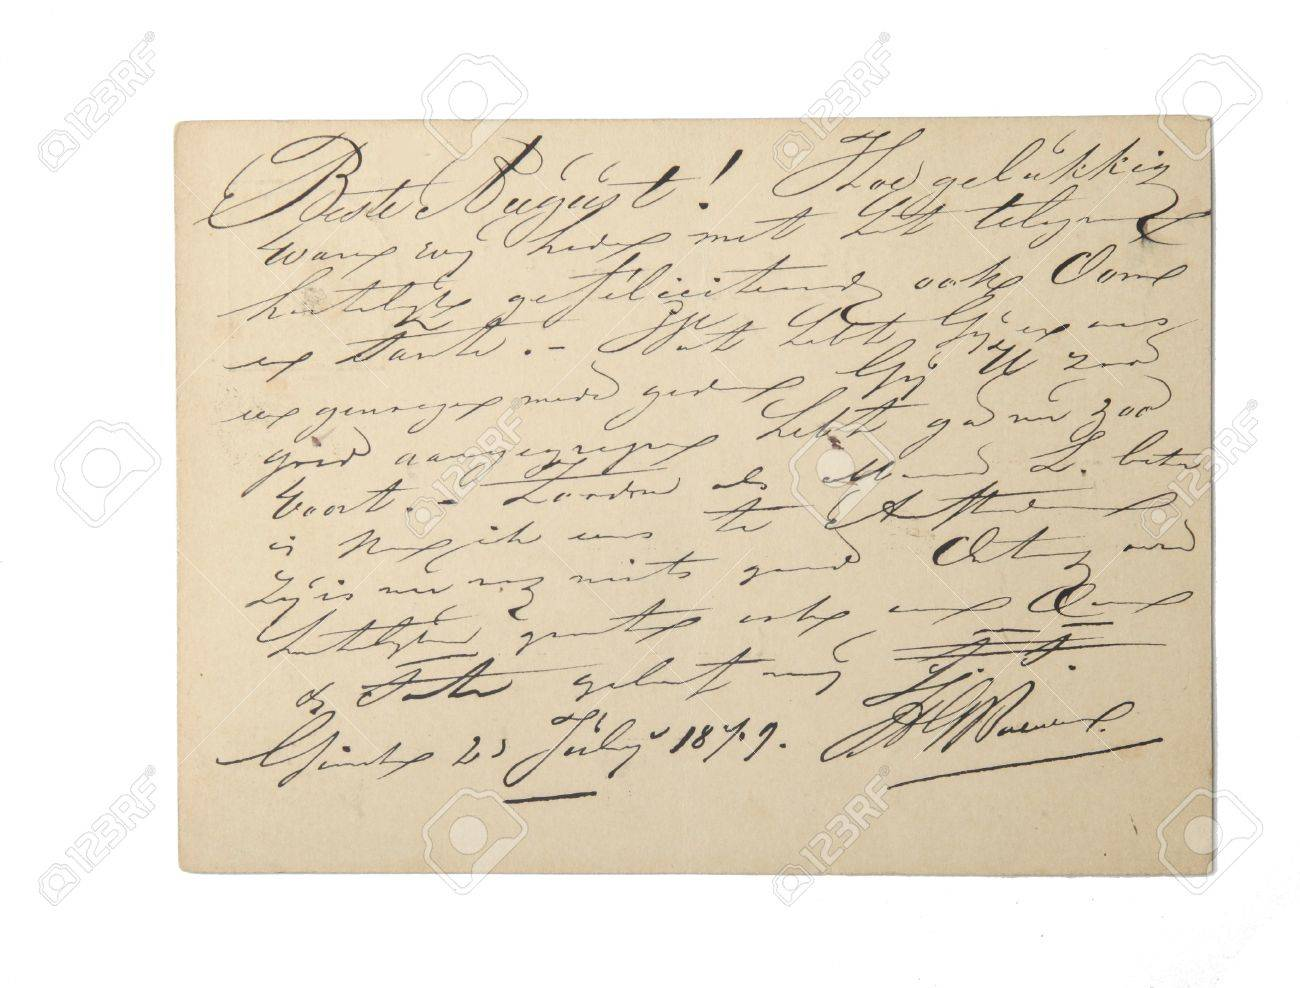 written on a paper images stock pictures royalty written written on a paper vintage dutch written document from 1879